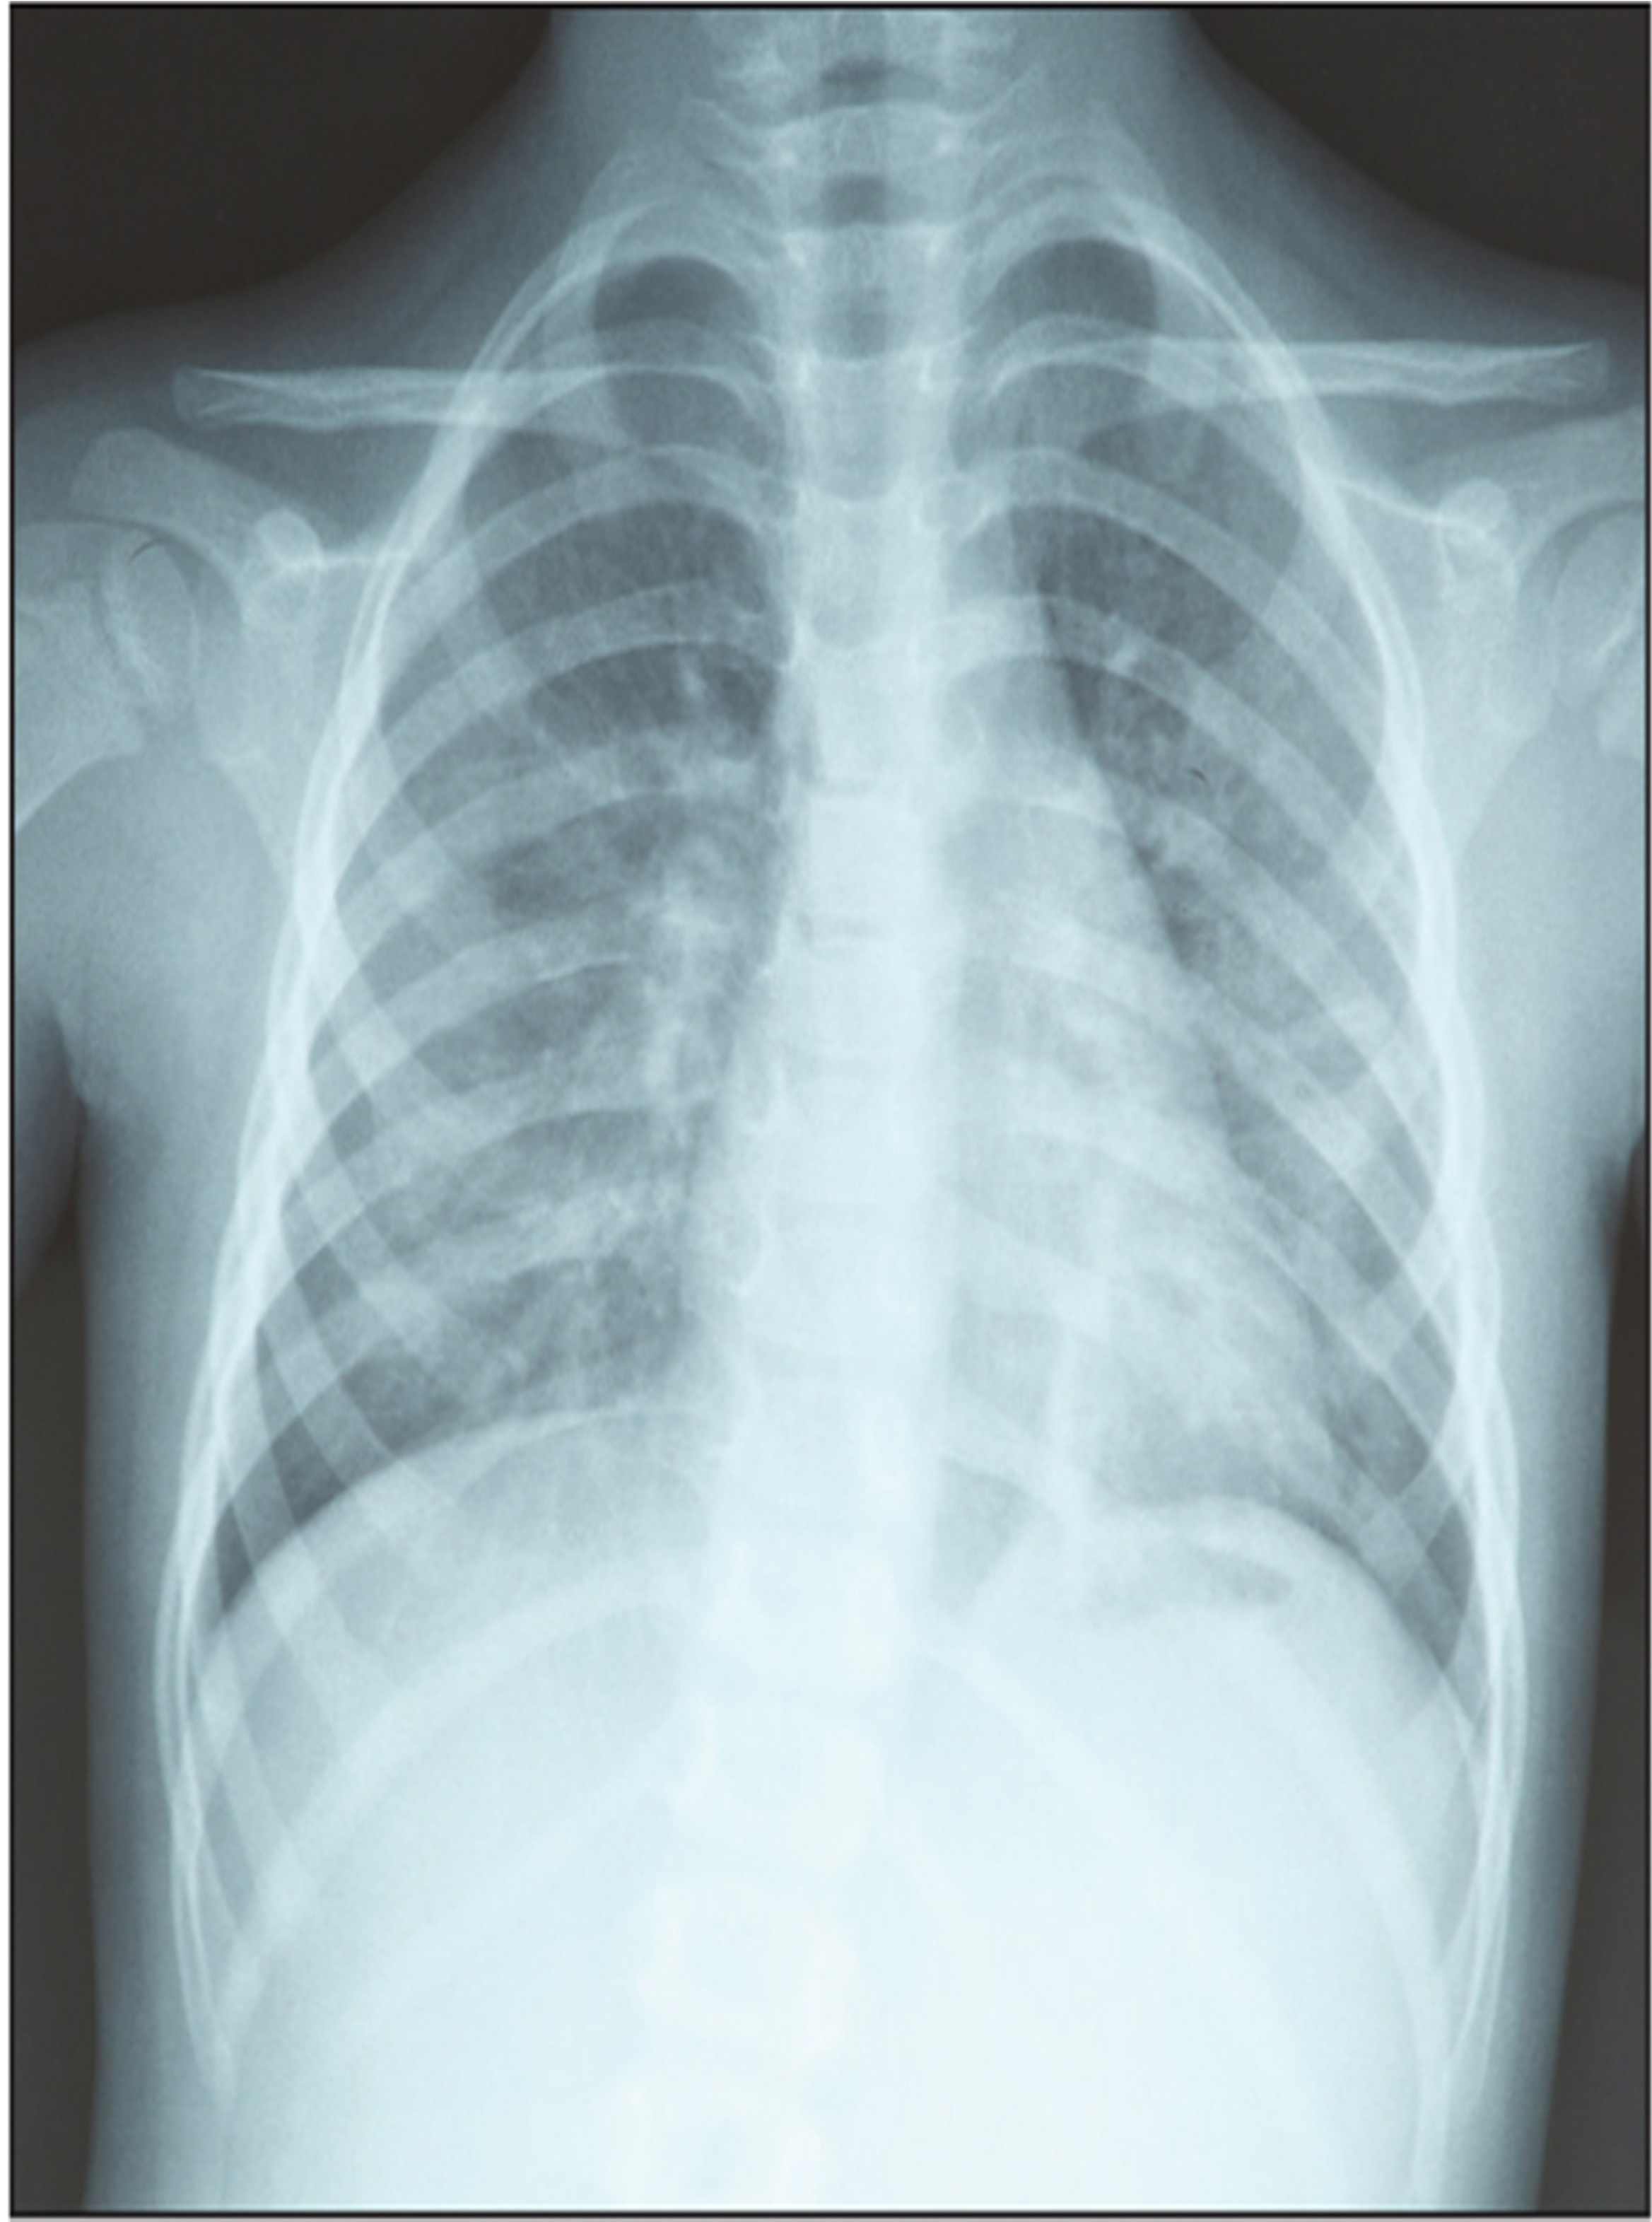 A chest X-ray of a child.© Shutterstock